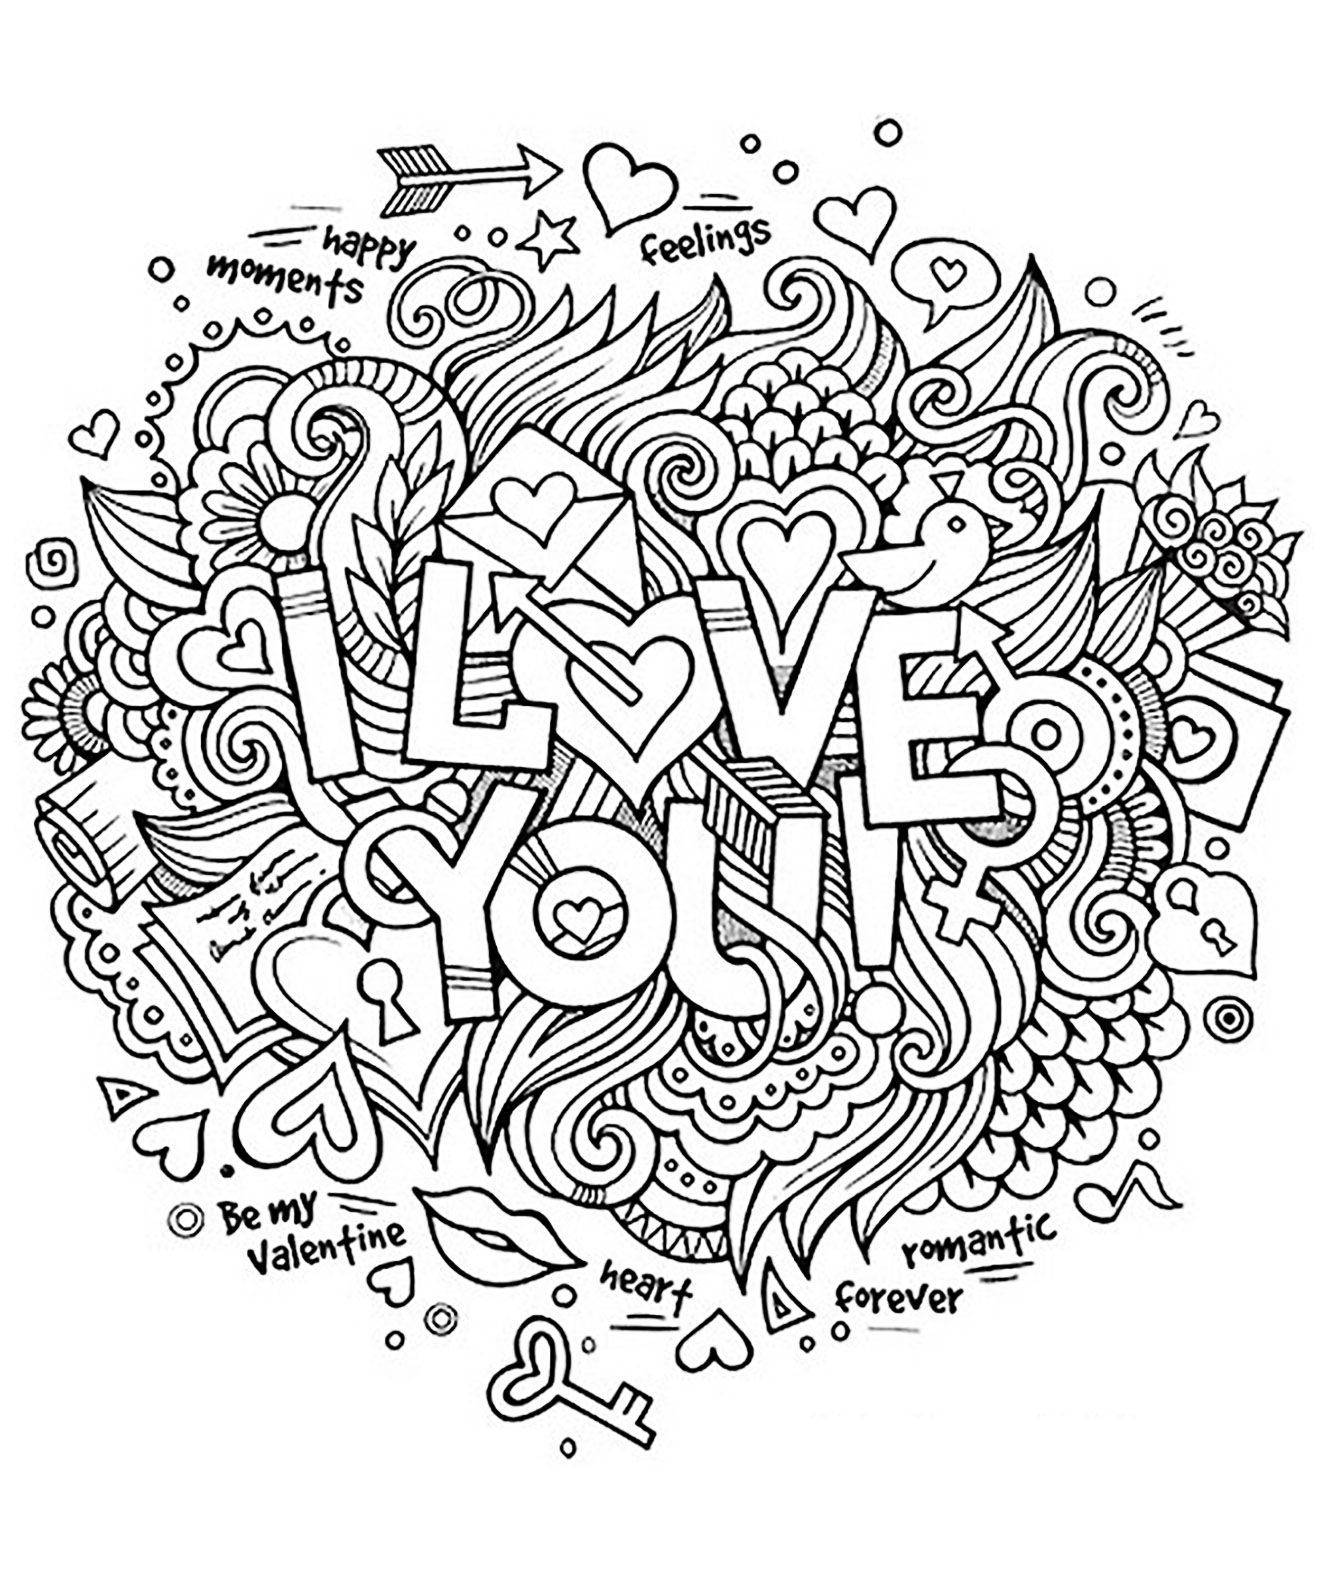 Coloring Quotes Coloring Rocks Love Coloring Pages Heart Coloring Pages Mandala Coloring Pages